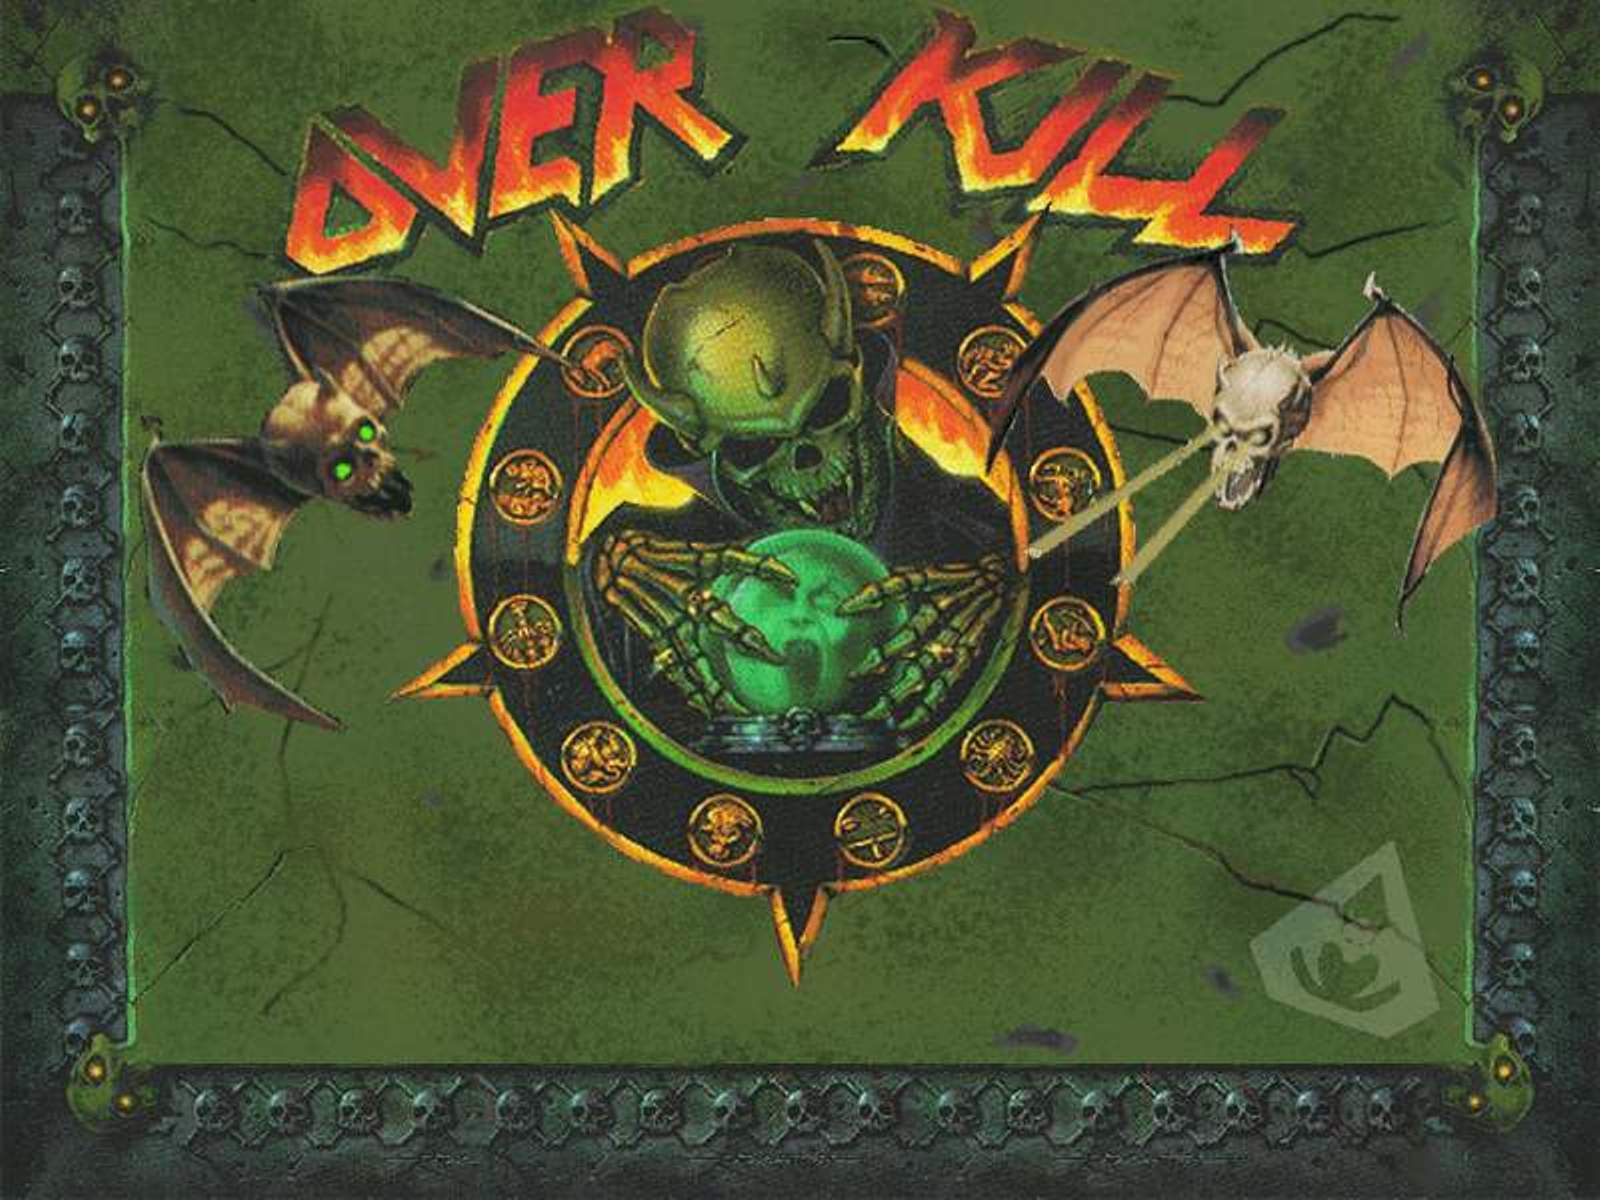 Download Overkill Wallpapers 1600x1200